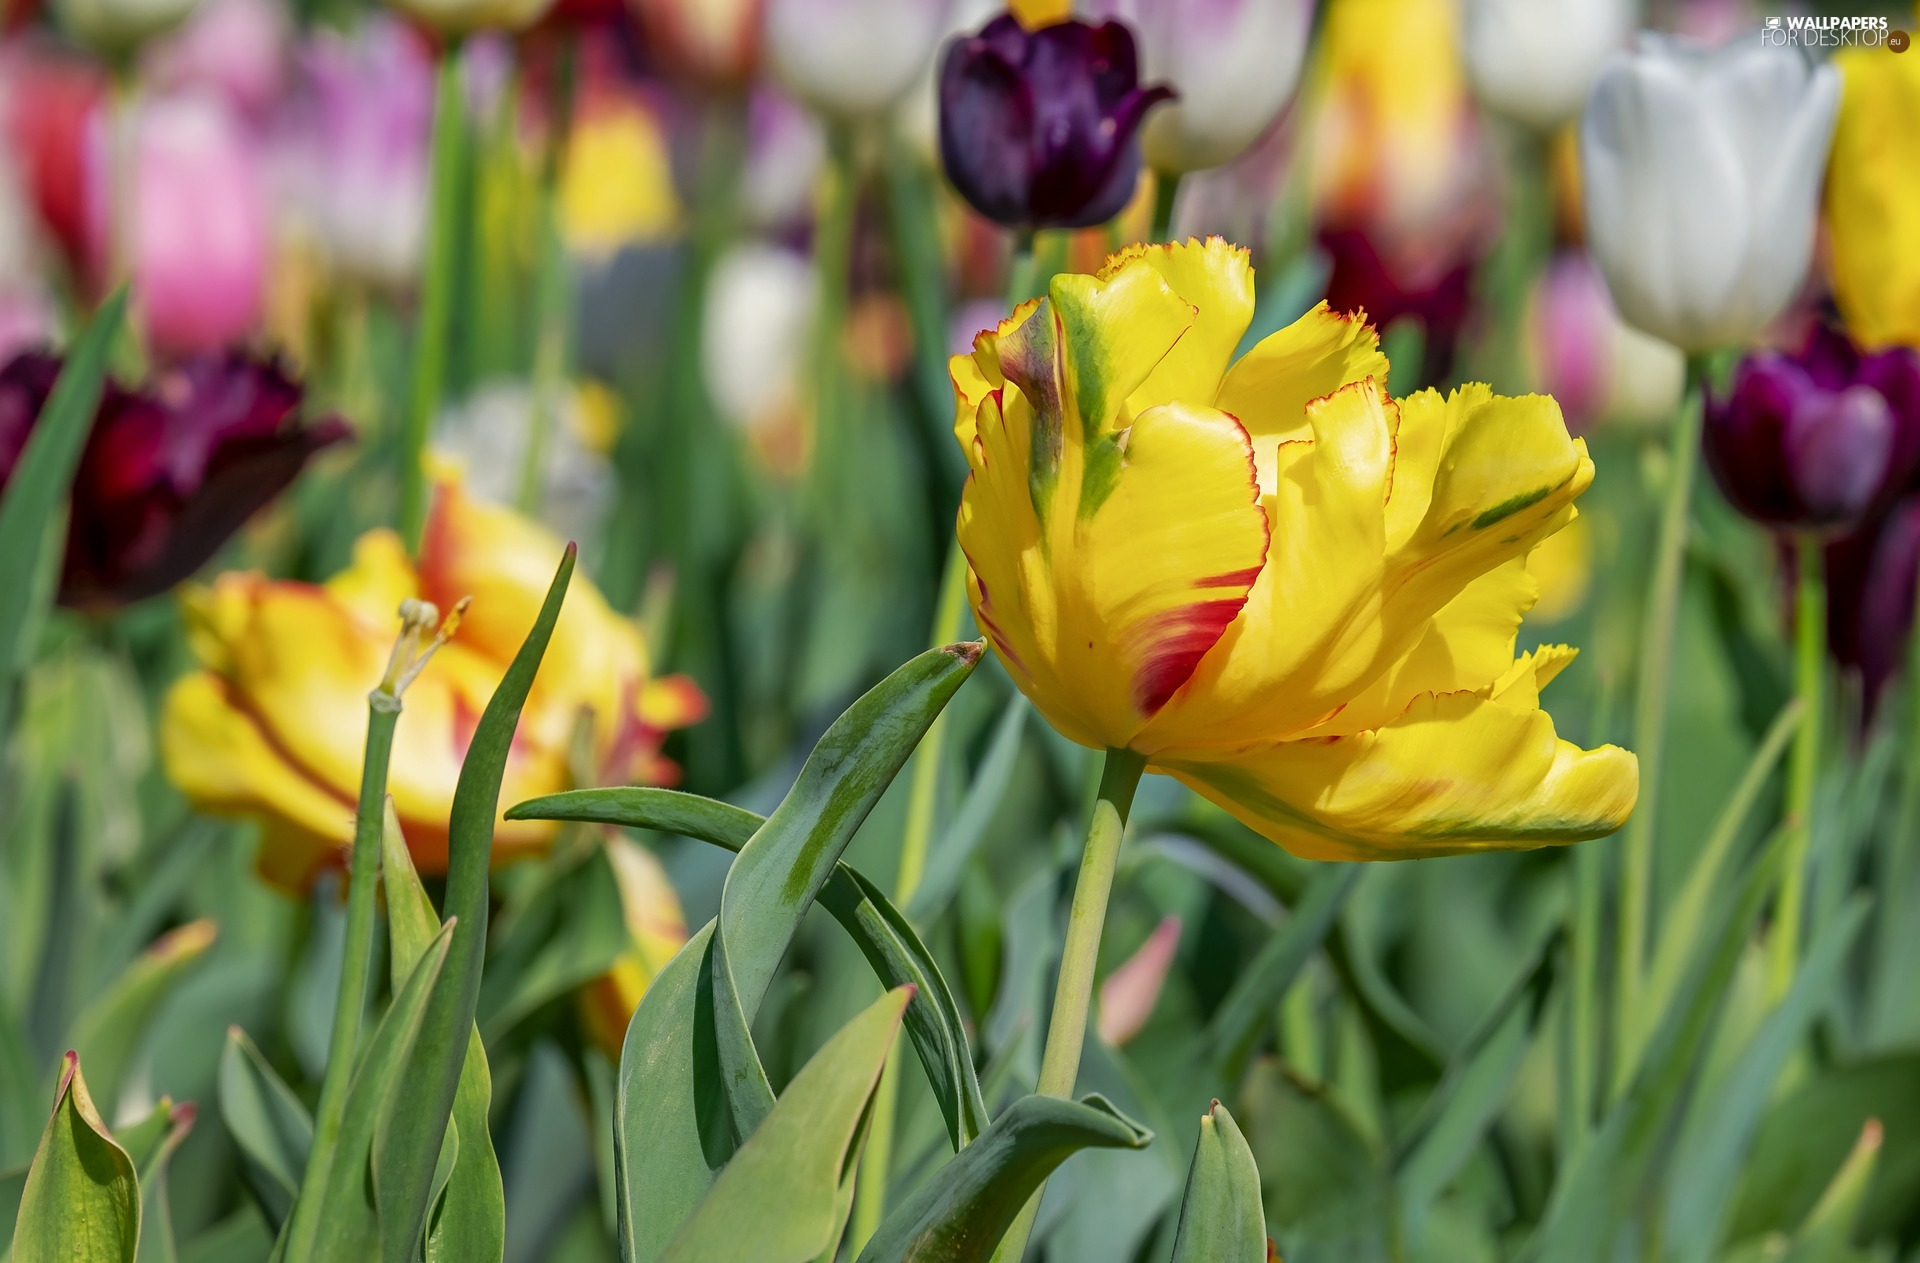 Meadow, blurry background, Yellow, tulip, Tulips